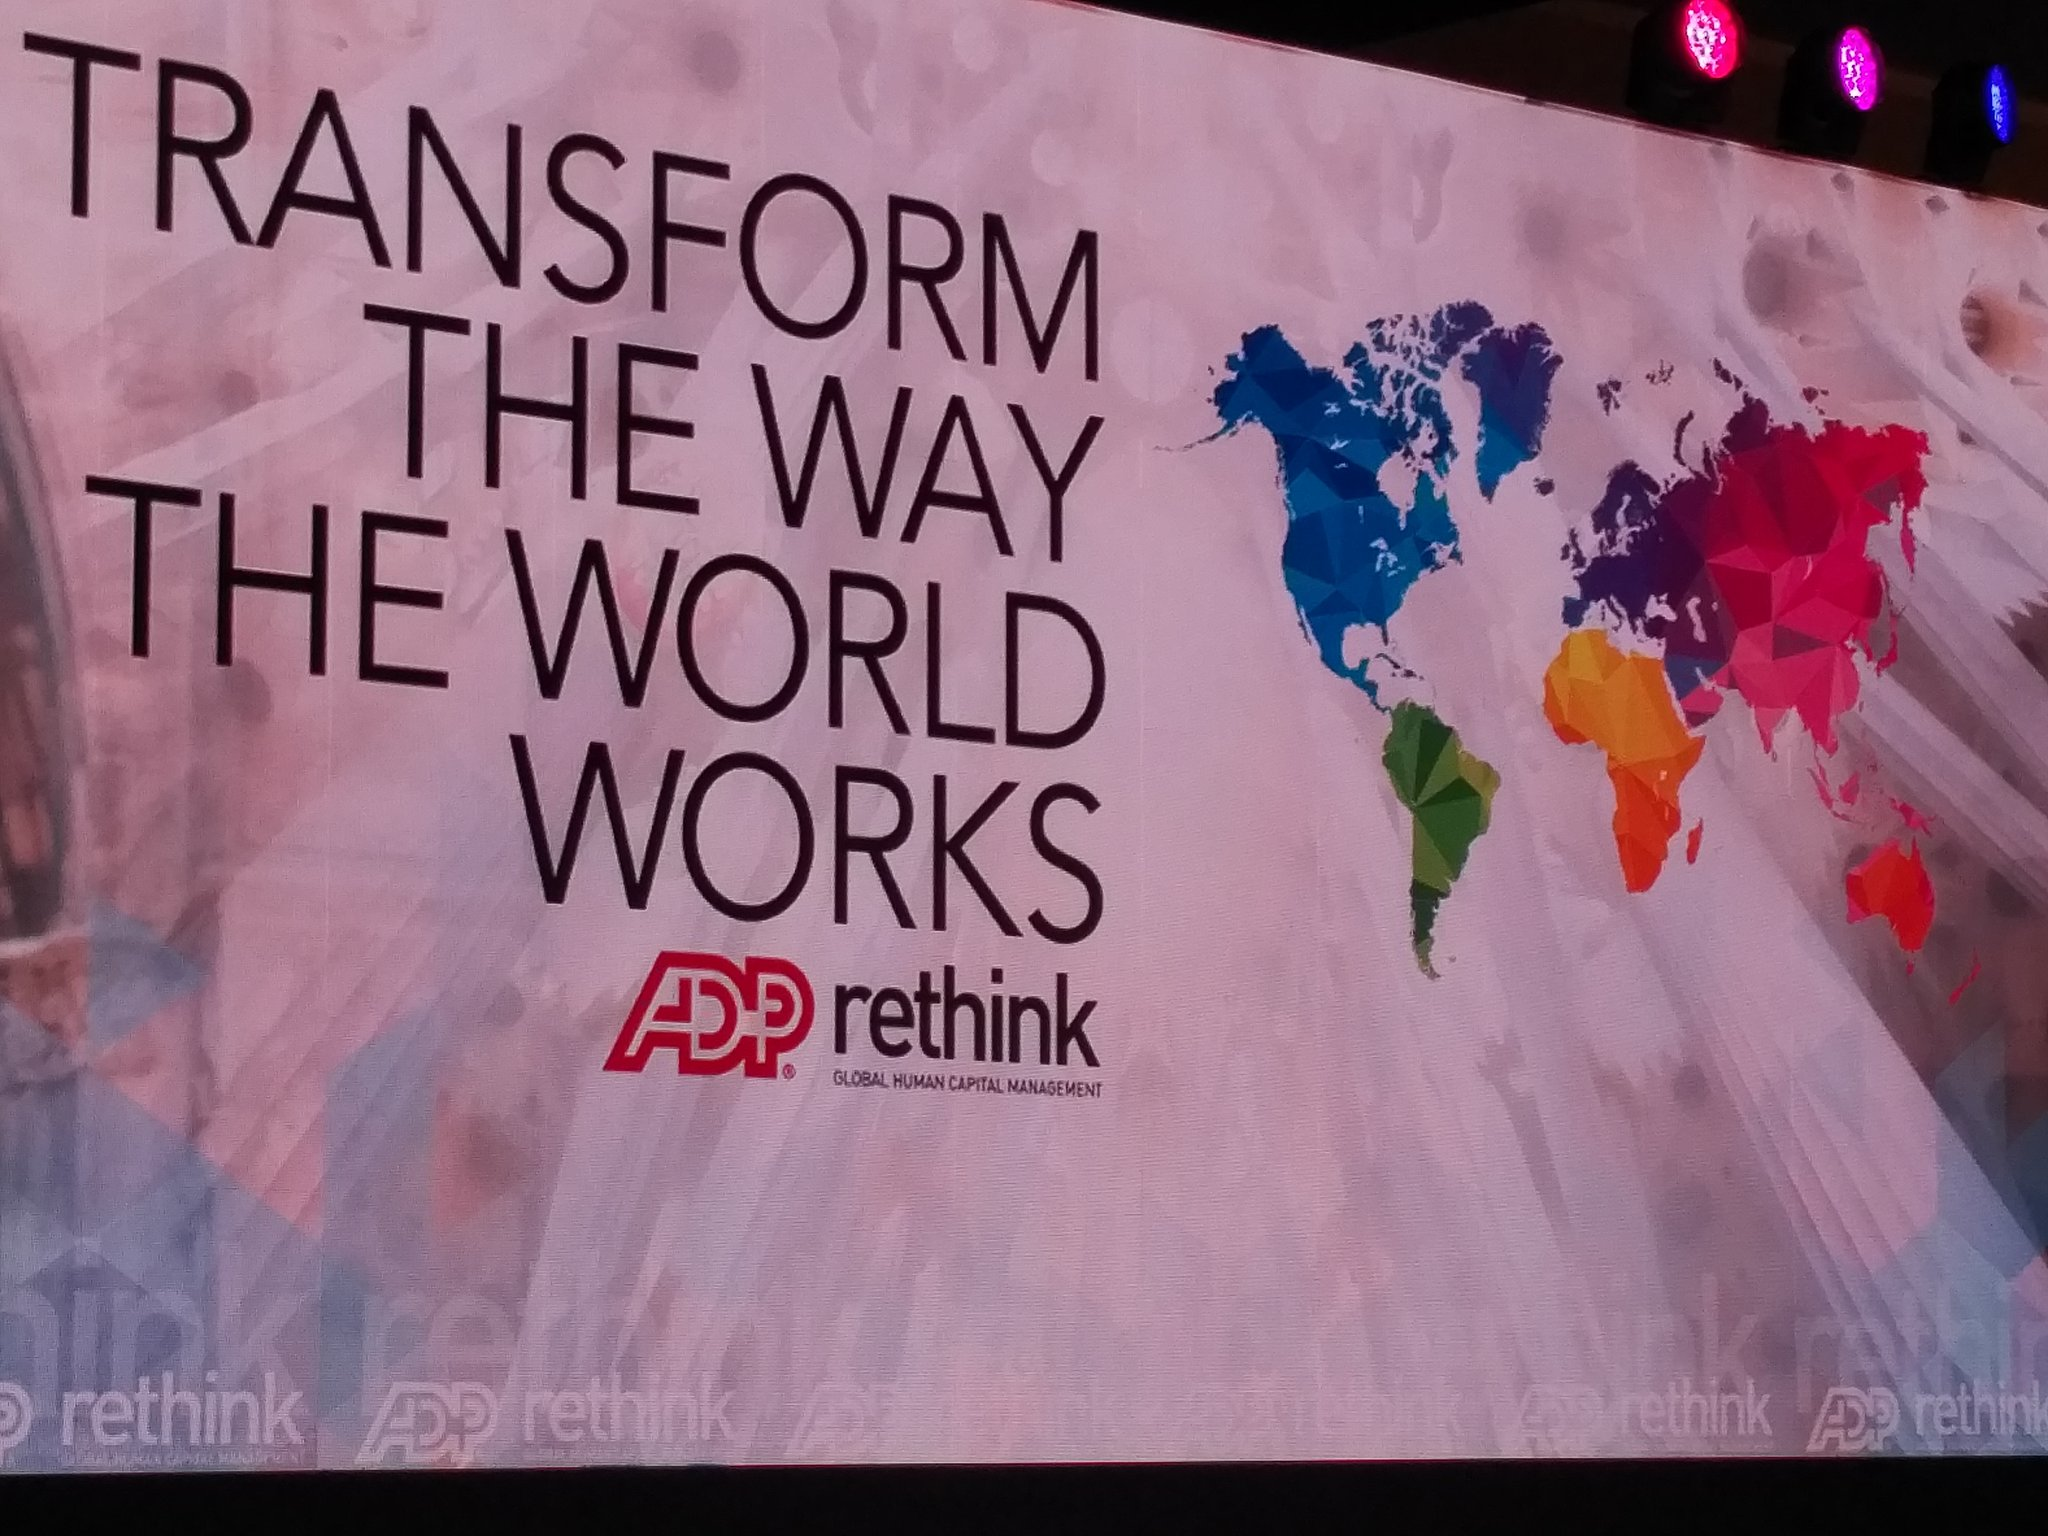 Ready for Day #2 (or is it #3) of #ADPReThink https://t.co/VNf87RcZgD